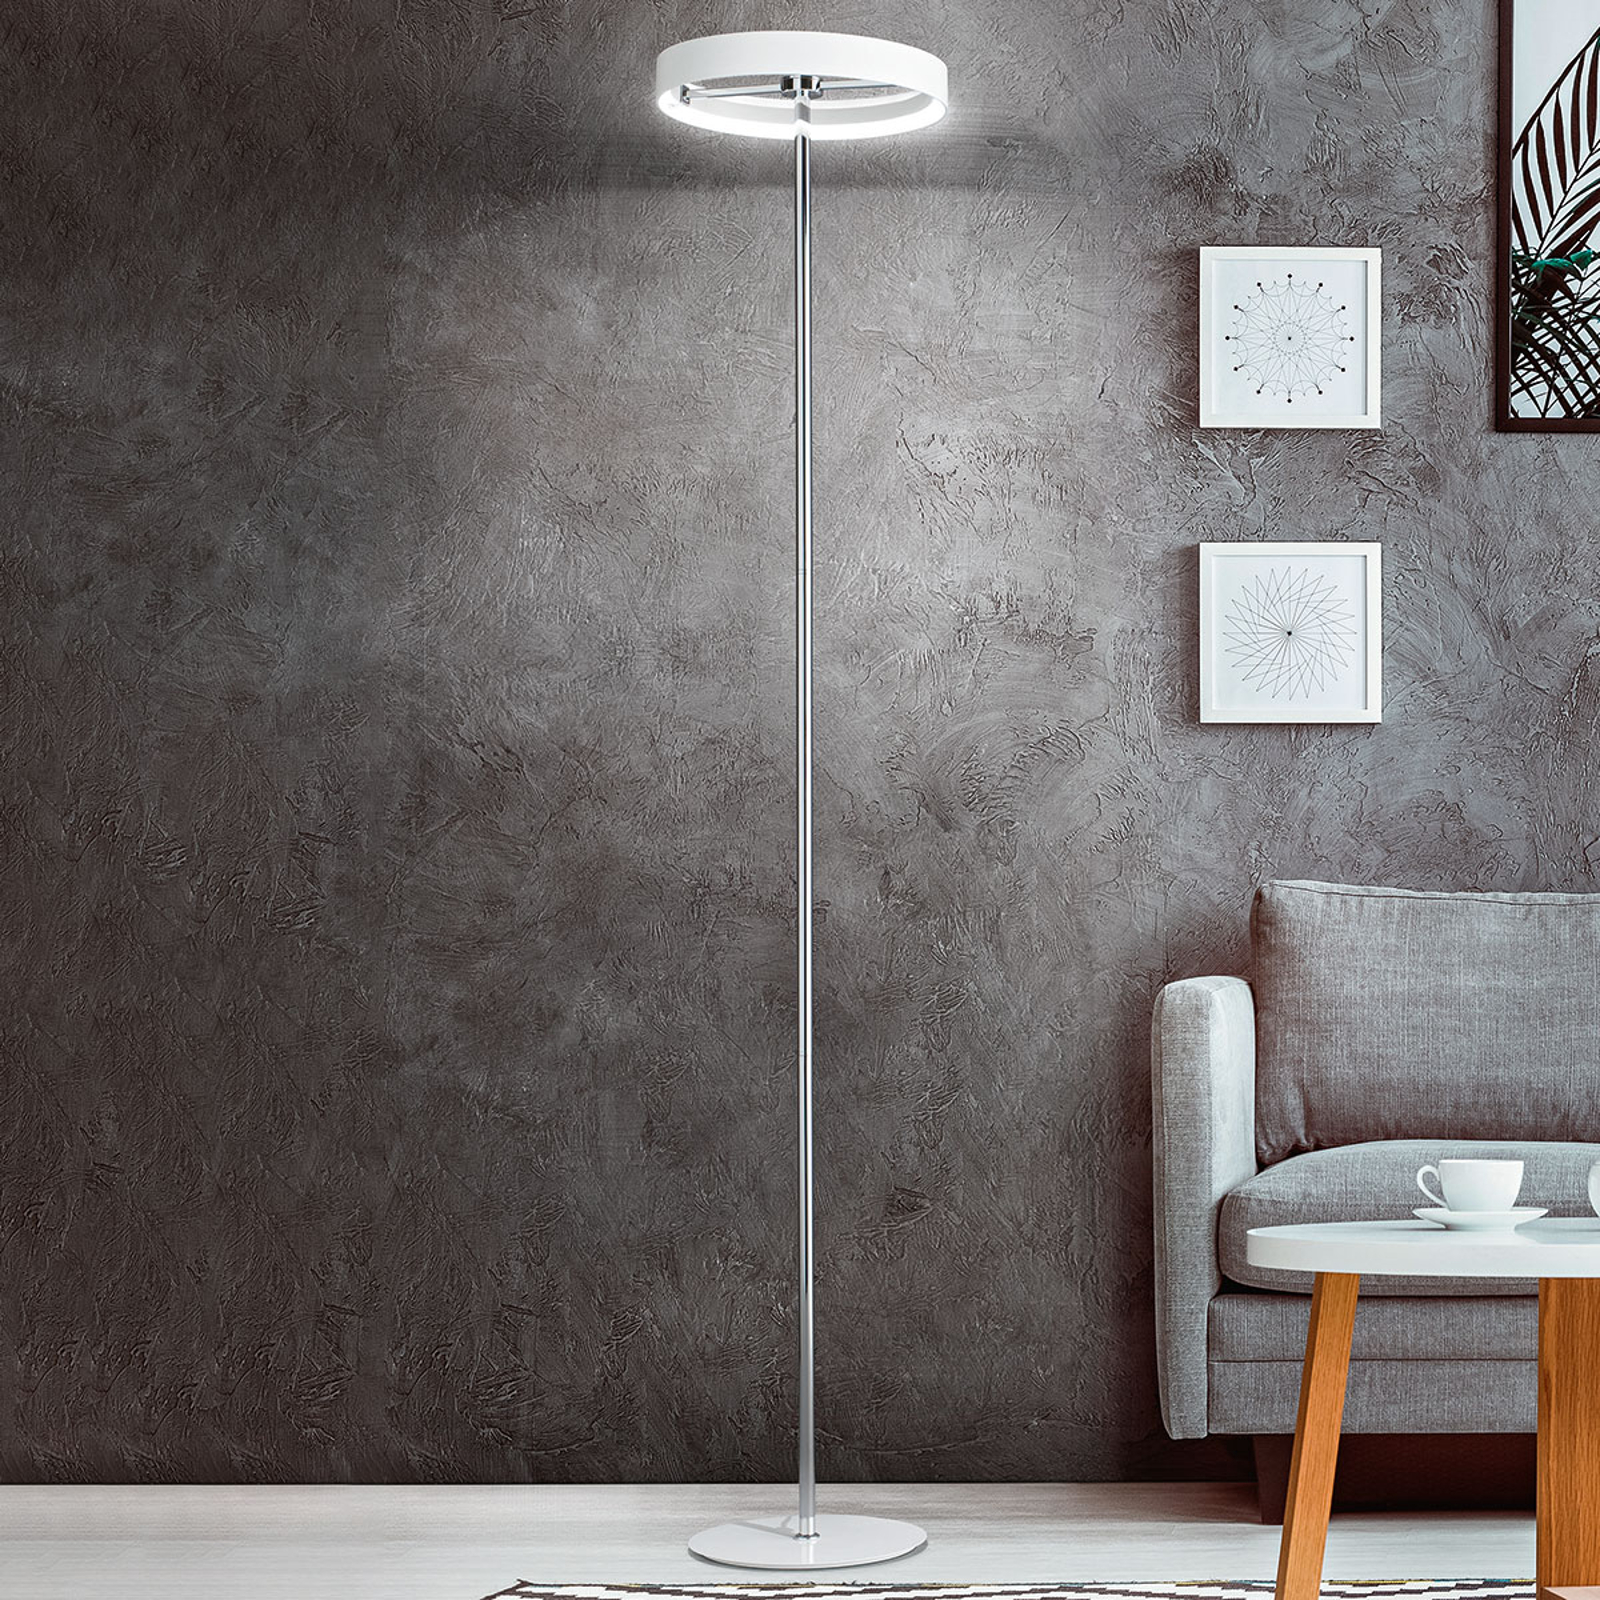 Lampadaire LED Double, variateur d'intensité